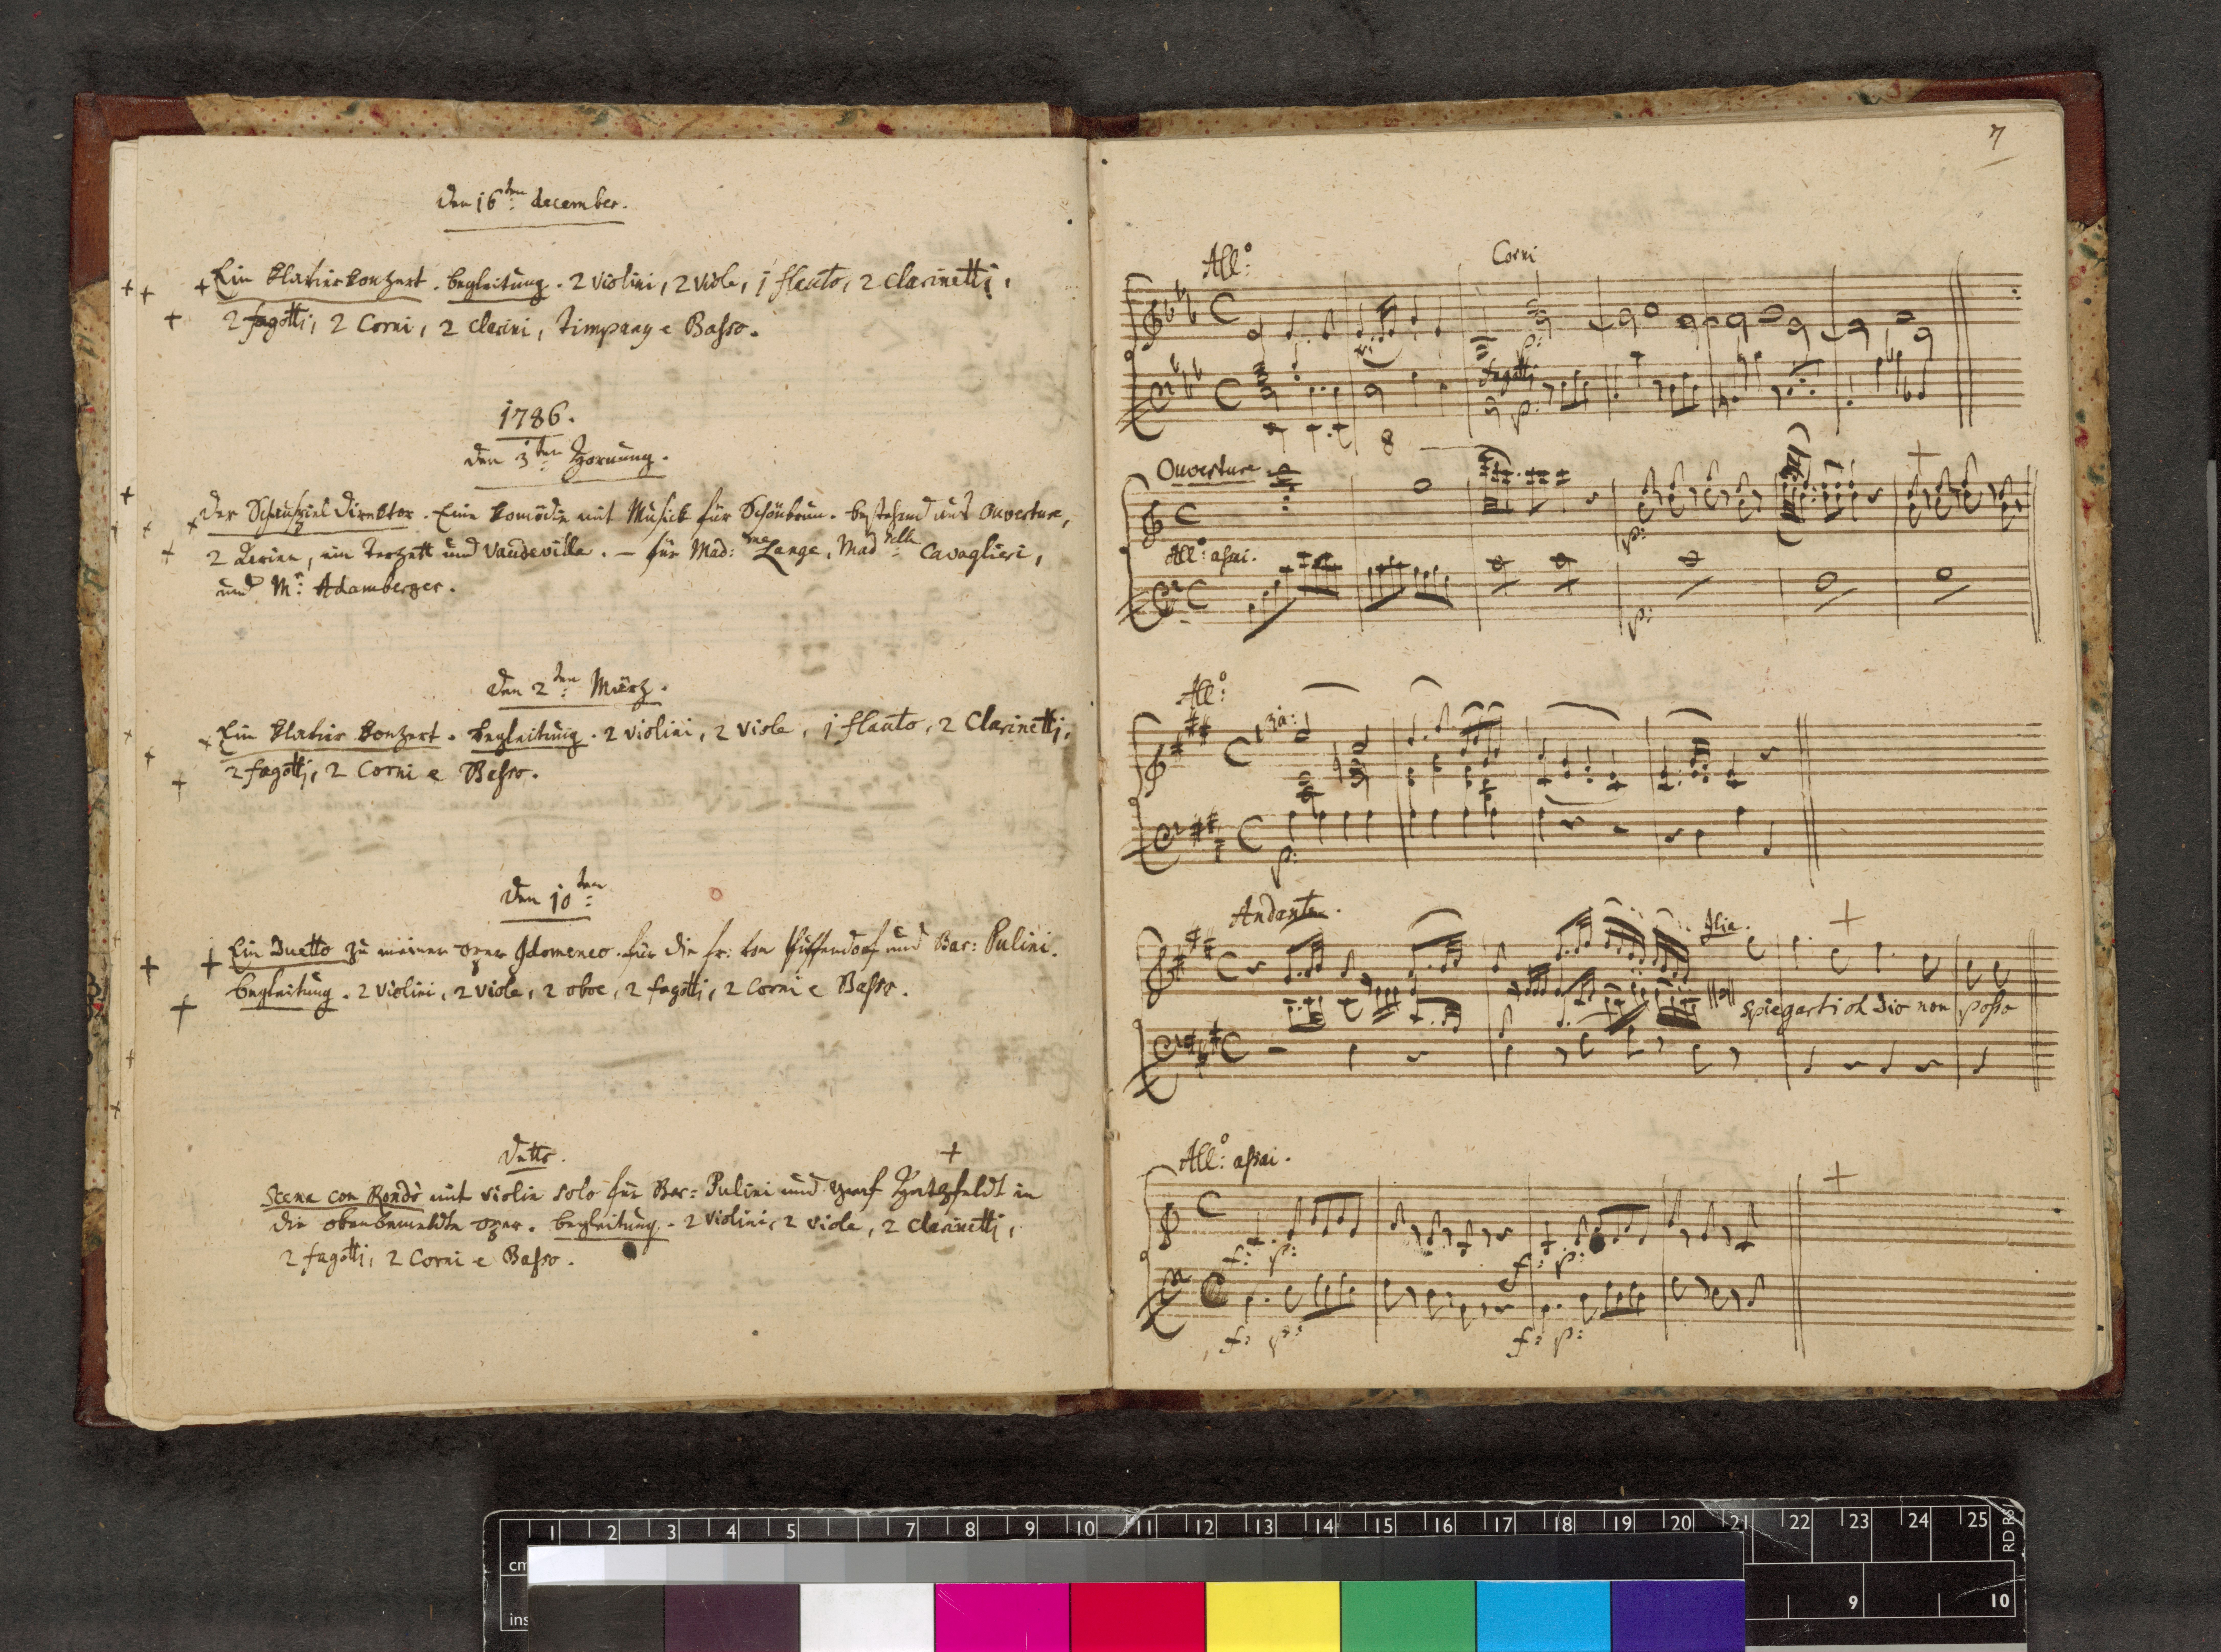 Mozart's catalogue of his complete musical works from 1784-1791, featuring his handwriting and musical notation (c) British Library